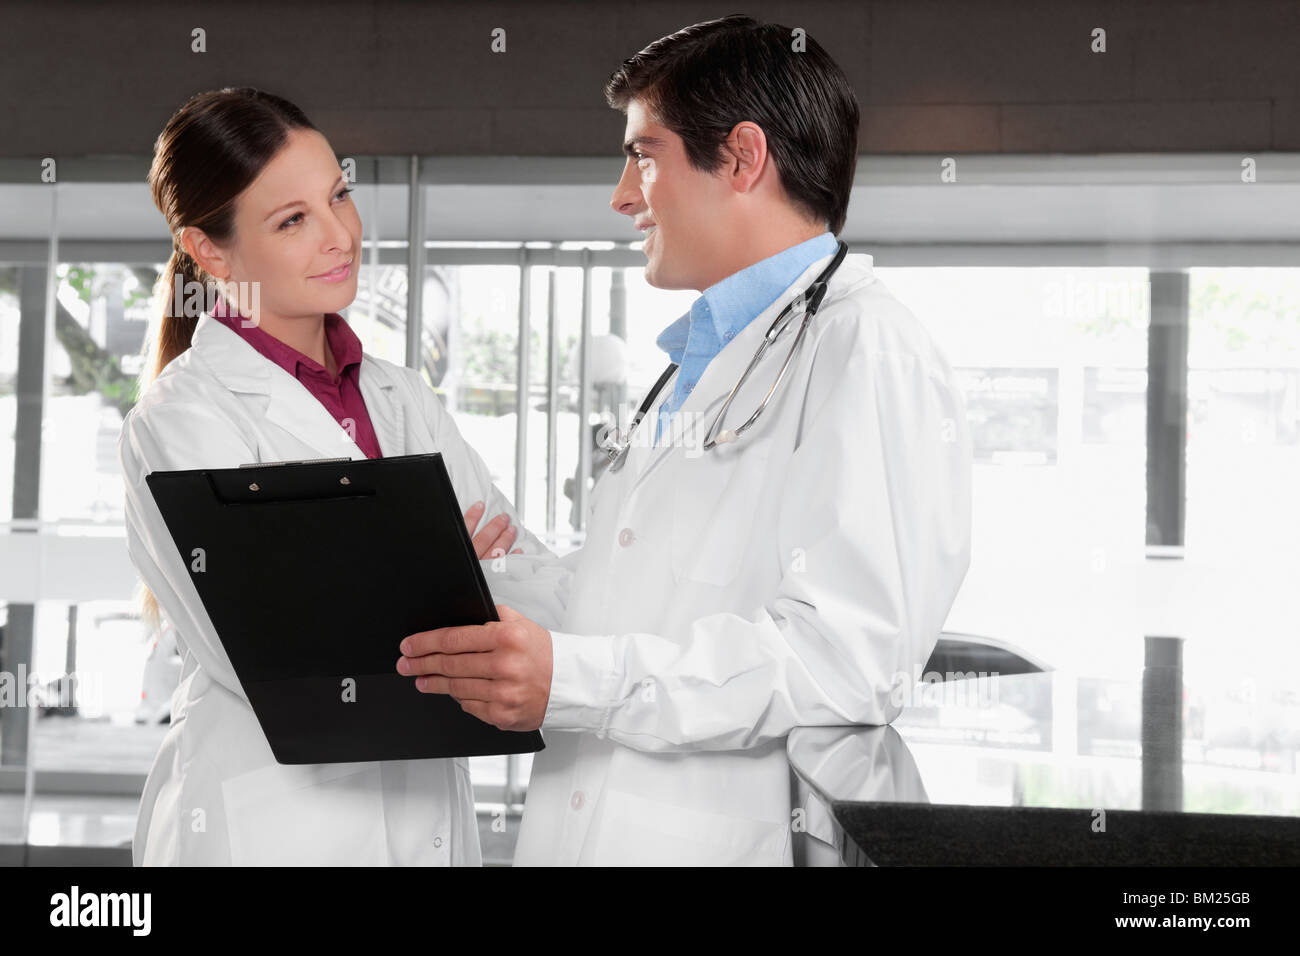 Two doctors talking in a hospital - Stock Image